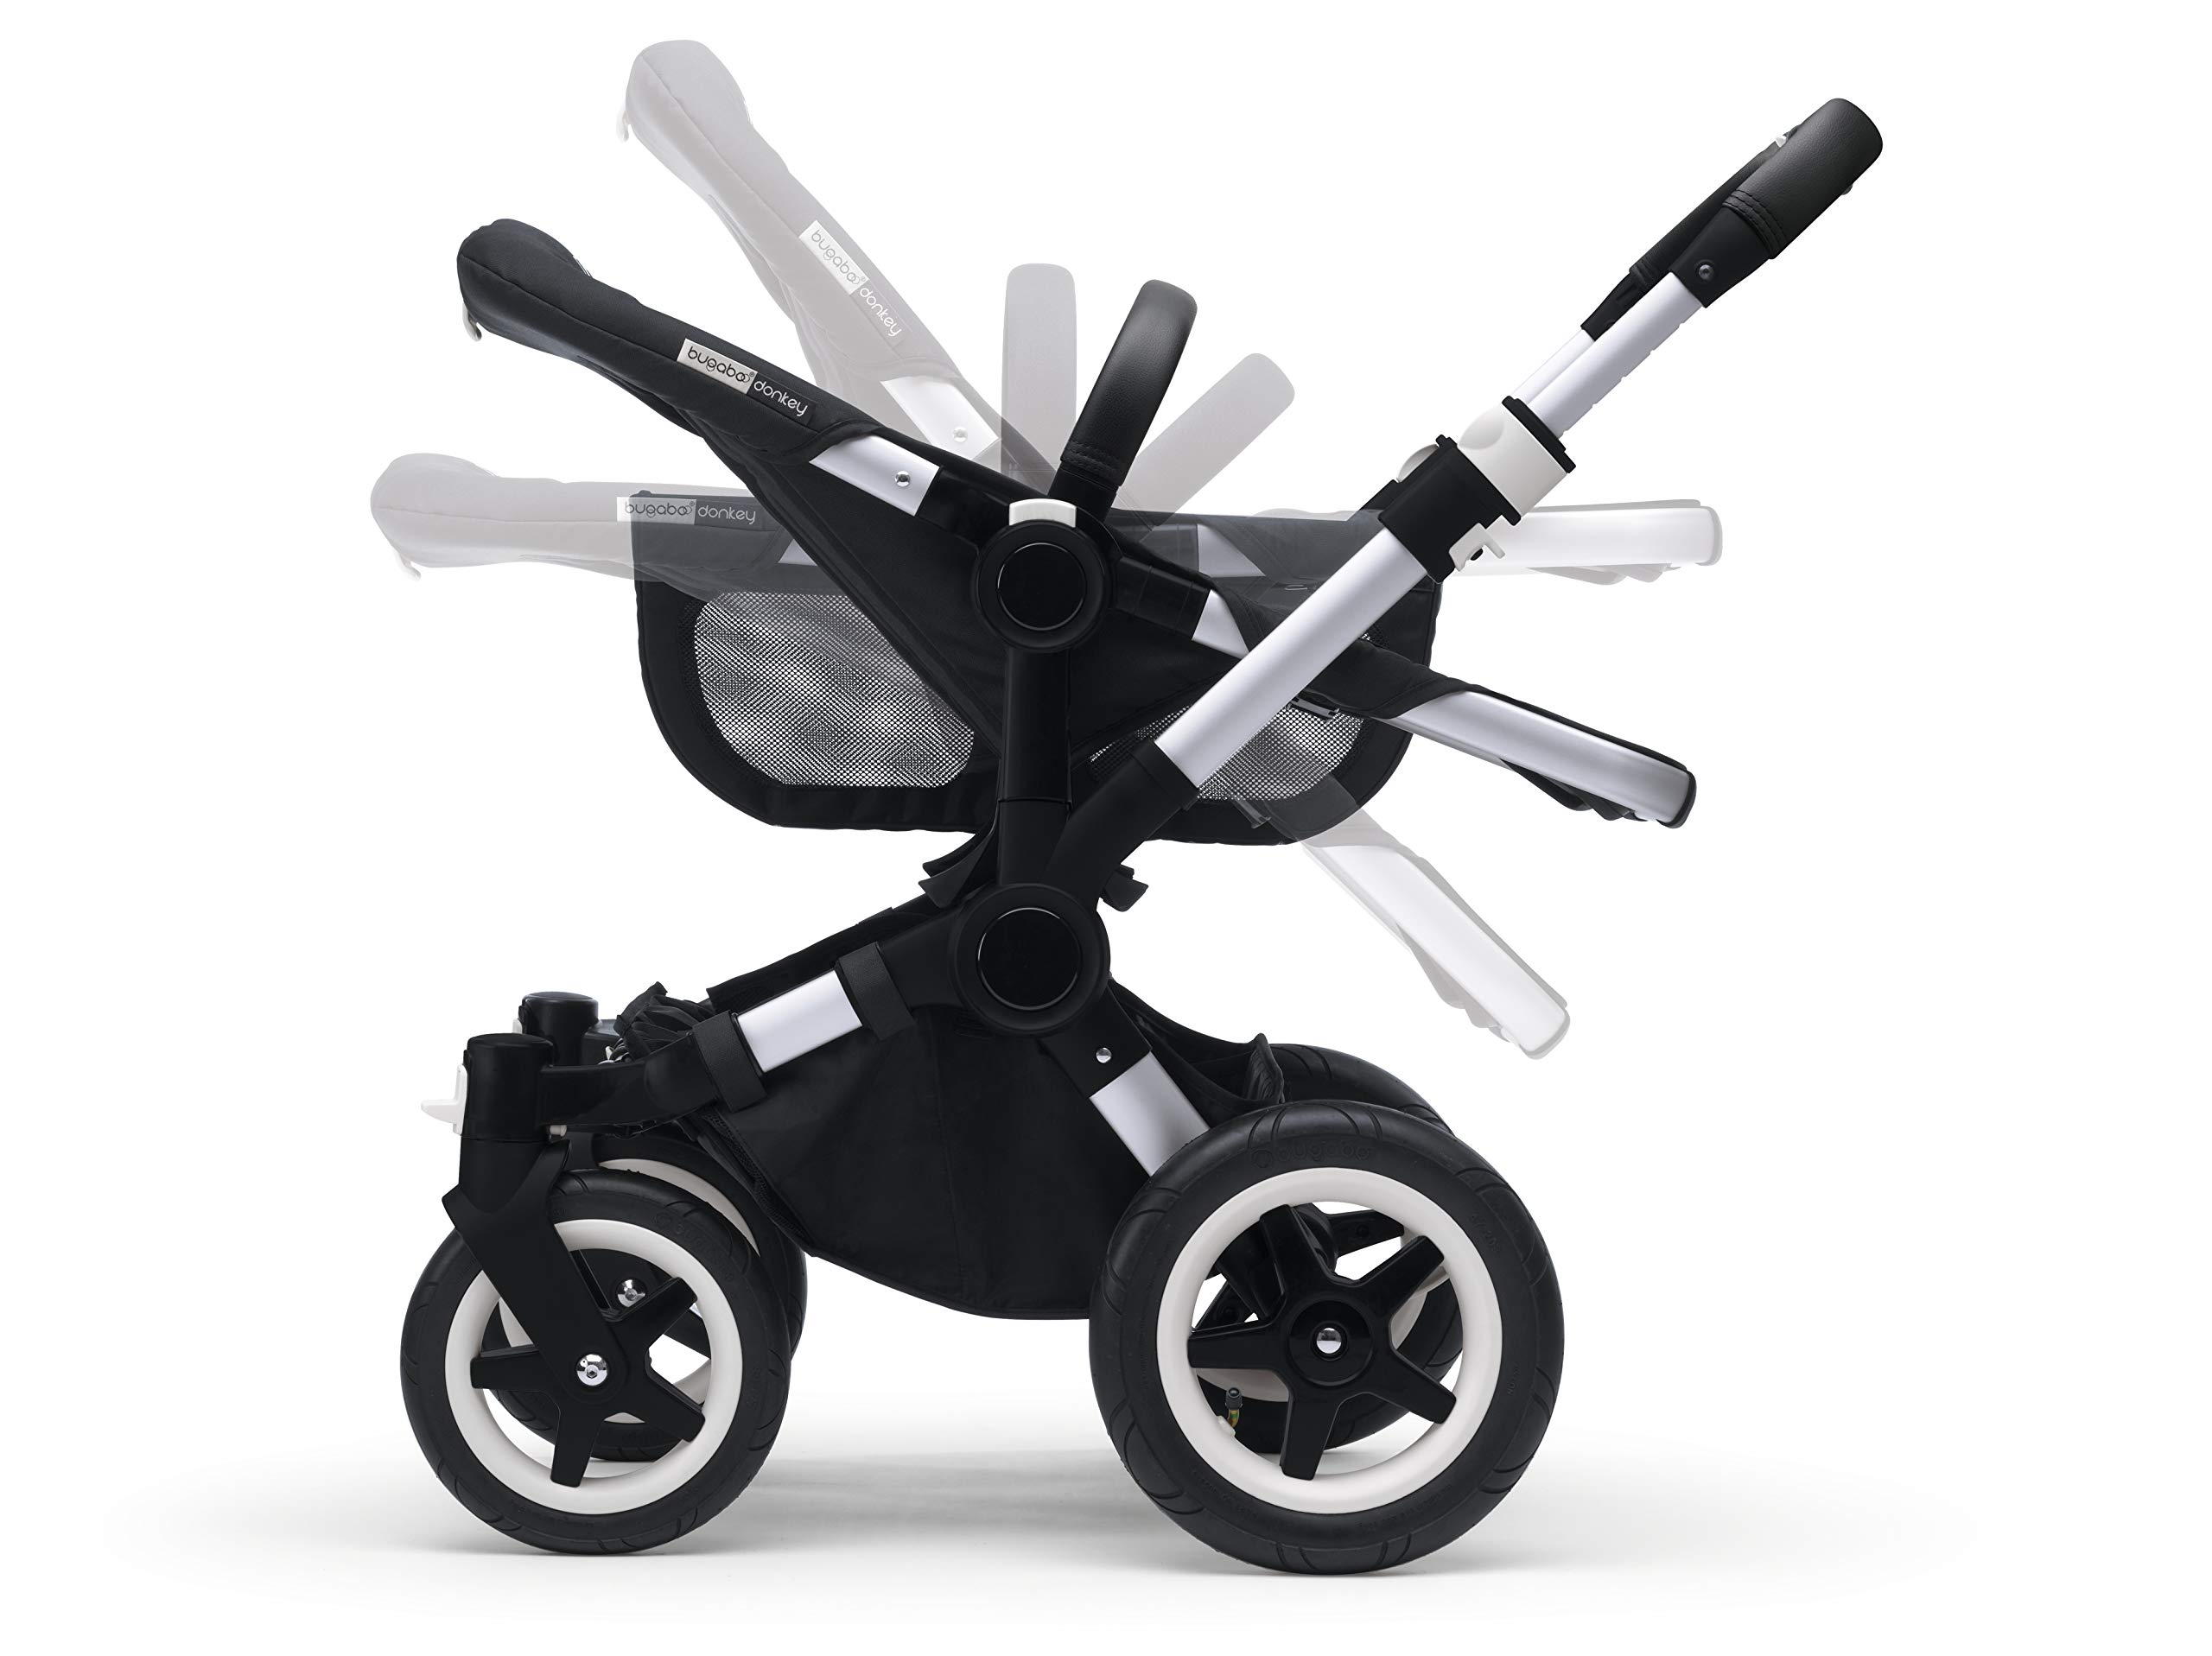 Bugaboo Donkey 2 Duo, 2 in 1 Pram and Double Pushchair for Baby and Toddler, Black Bugaboo Perfect for two children of different ages Use as a double pushchair or convert it back into a single (mono) in a few simple clicks You only need one hand to push, steer and turn 5